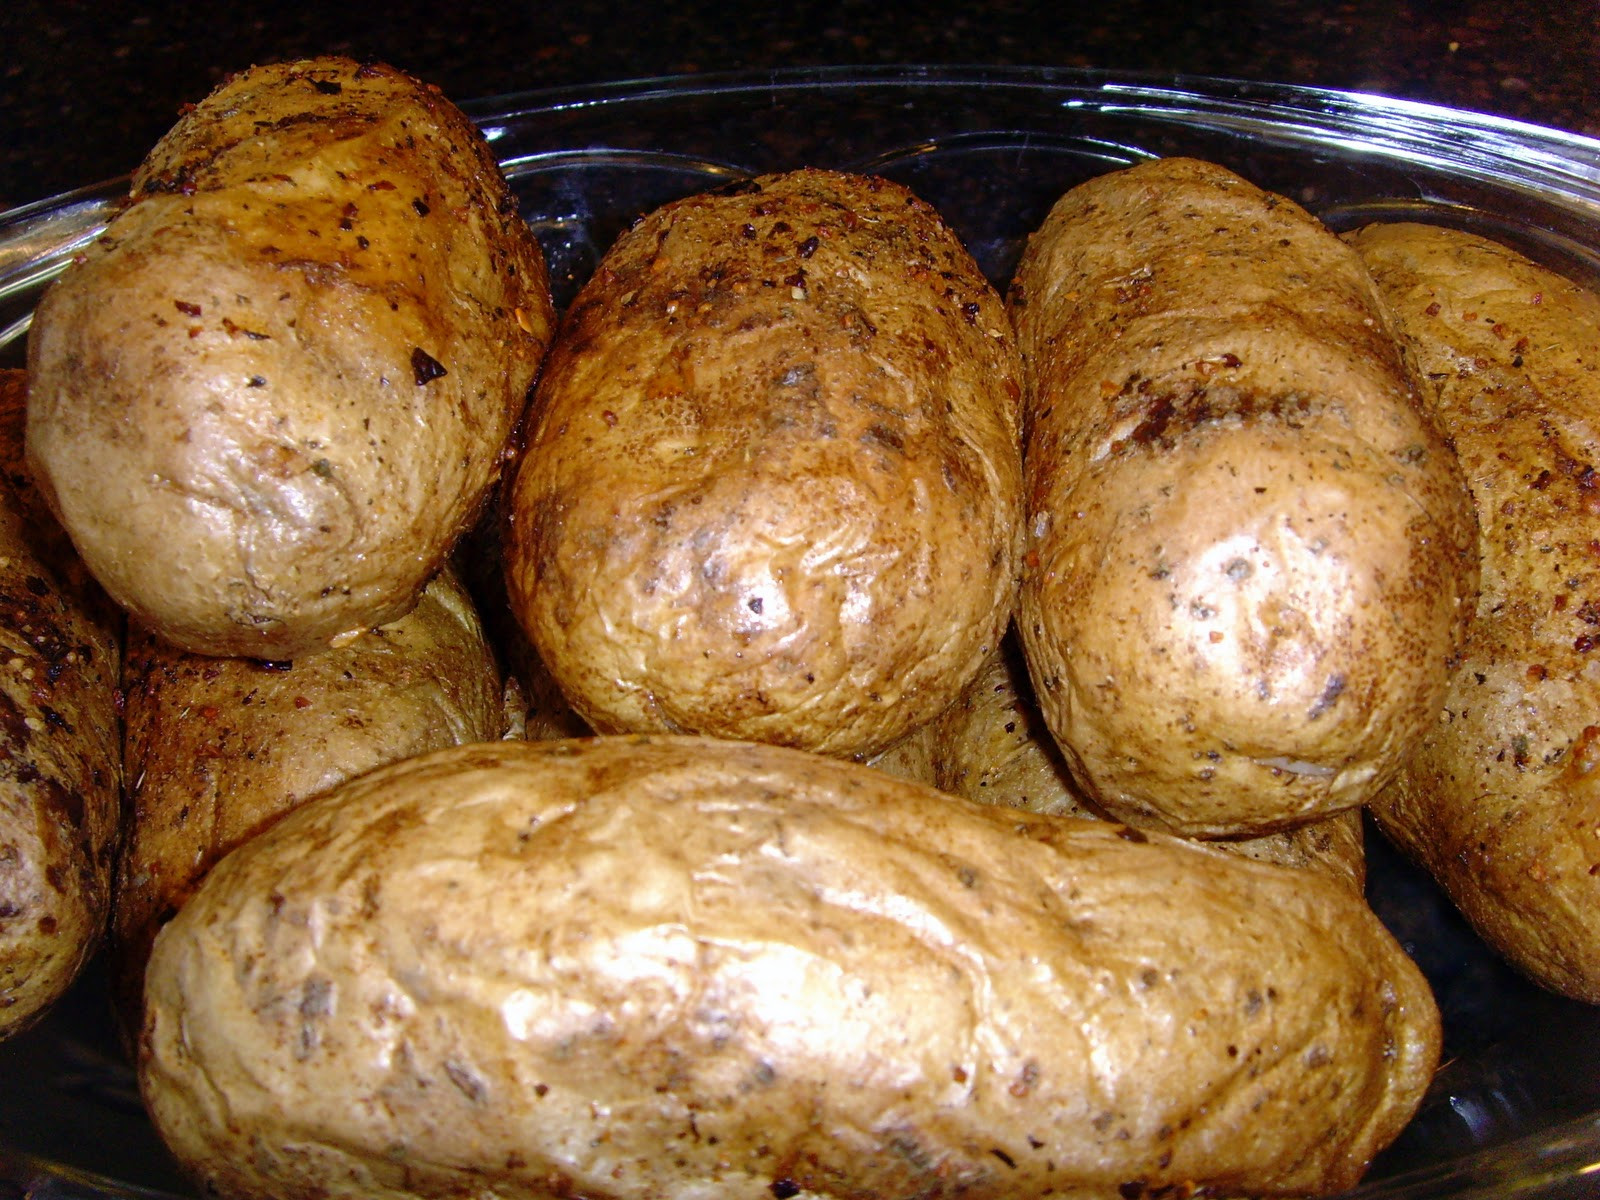 Bake A Potato In The Oven  Kitchen Tip Oven Baked Potatoes • Food Folks and Fun